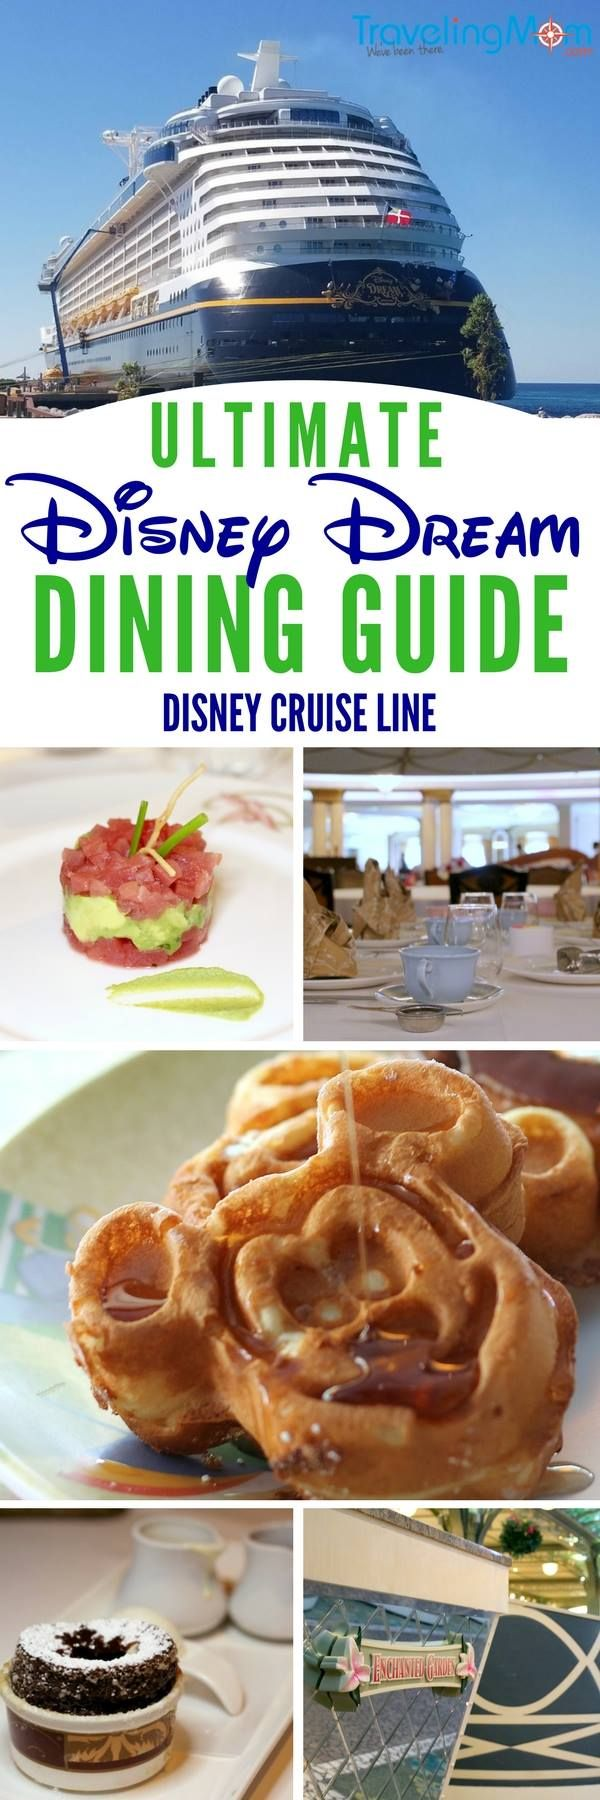 Planning a cruise aboard the Disney Dream? Find out everything you need to know about the Disney Dream restaurants with this Disney Dream dining guide.